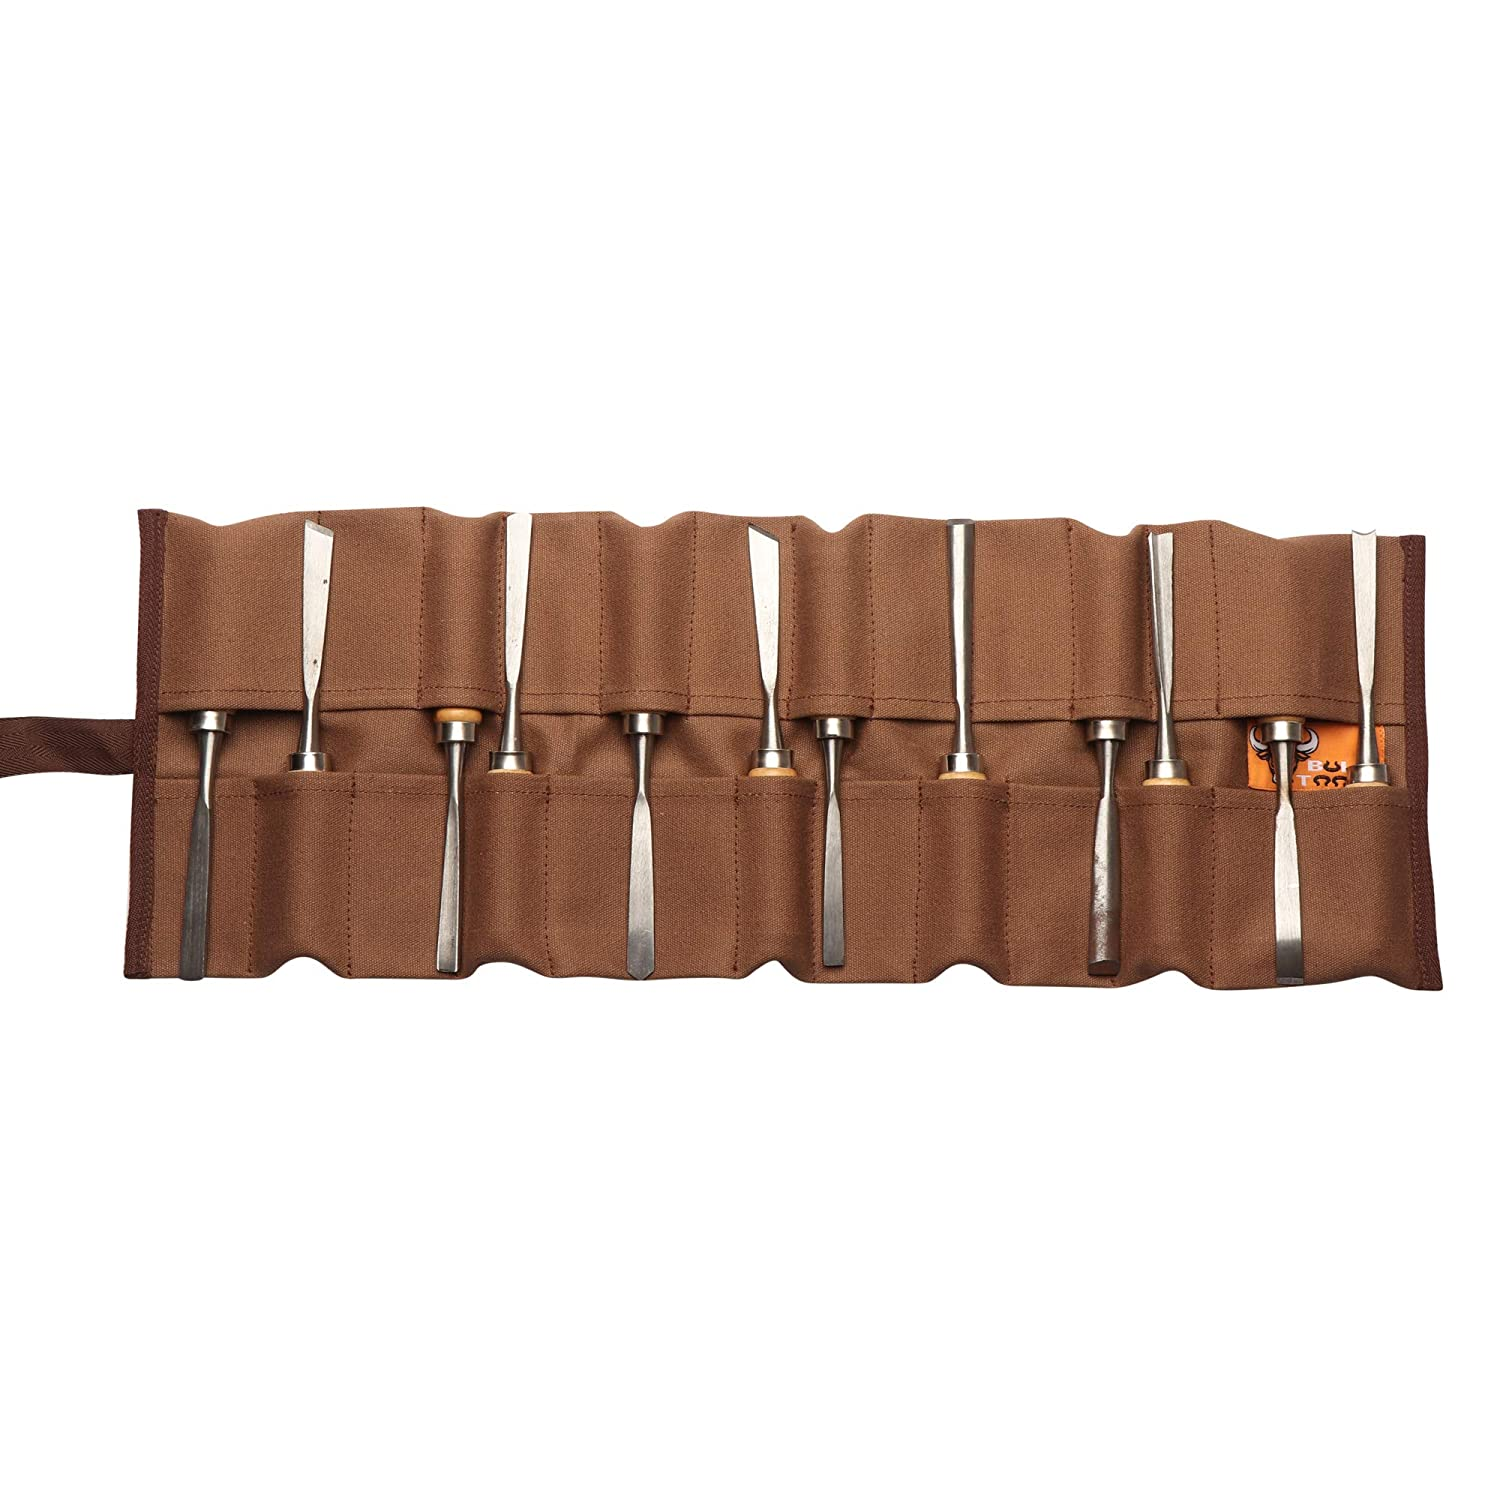 Bull Tools BT 18-501 Wood Working /& Carving Tool Storage Organizer Tool Roll Dyed Heavy Weight Cotton Canvas 24 Pocket Olive Drab